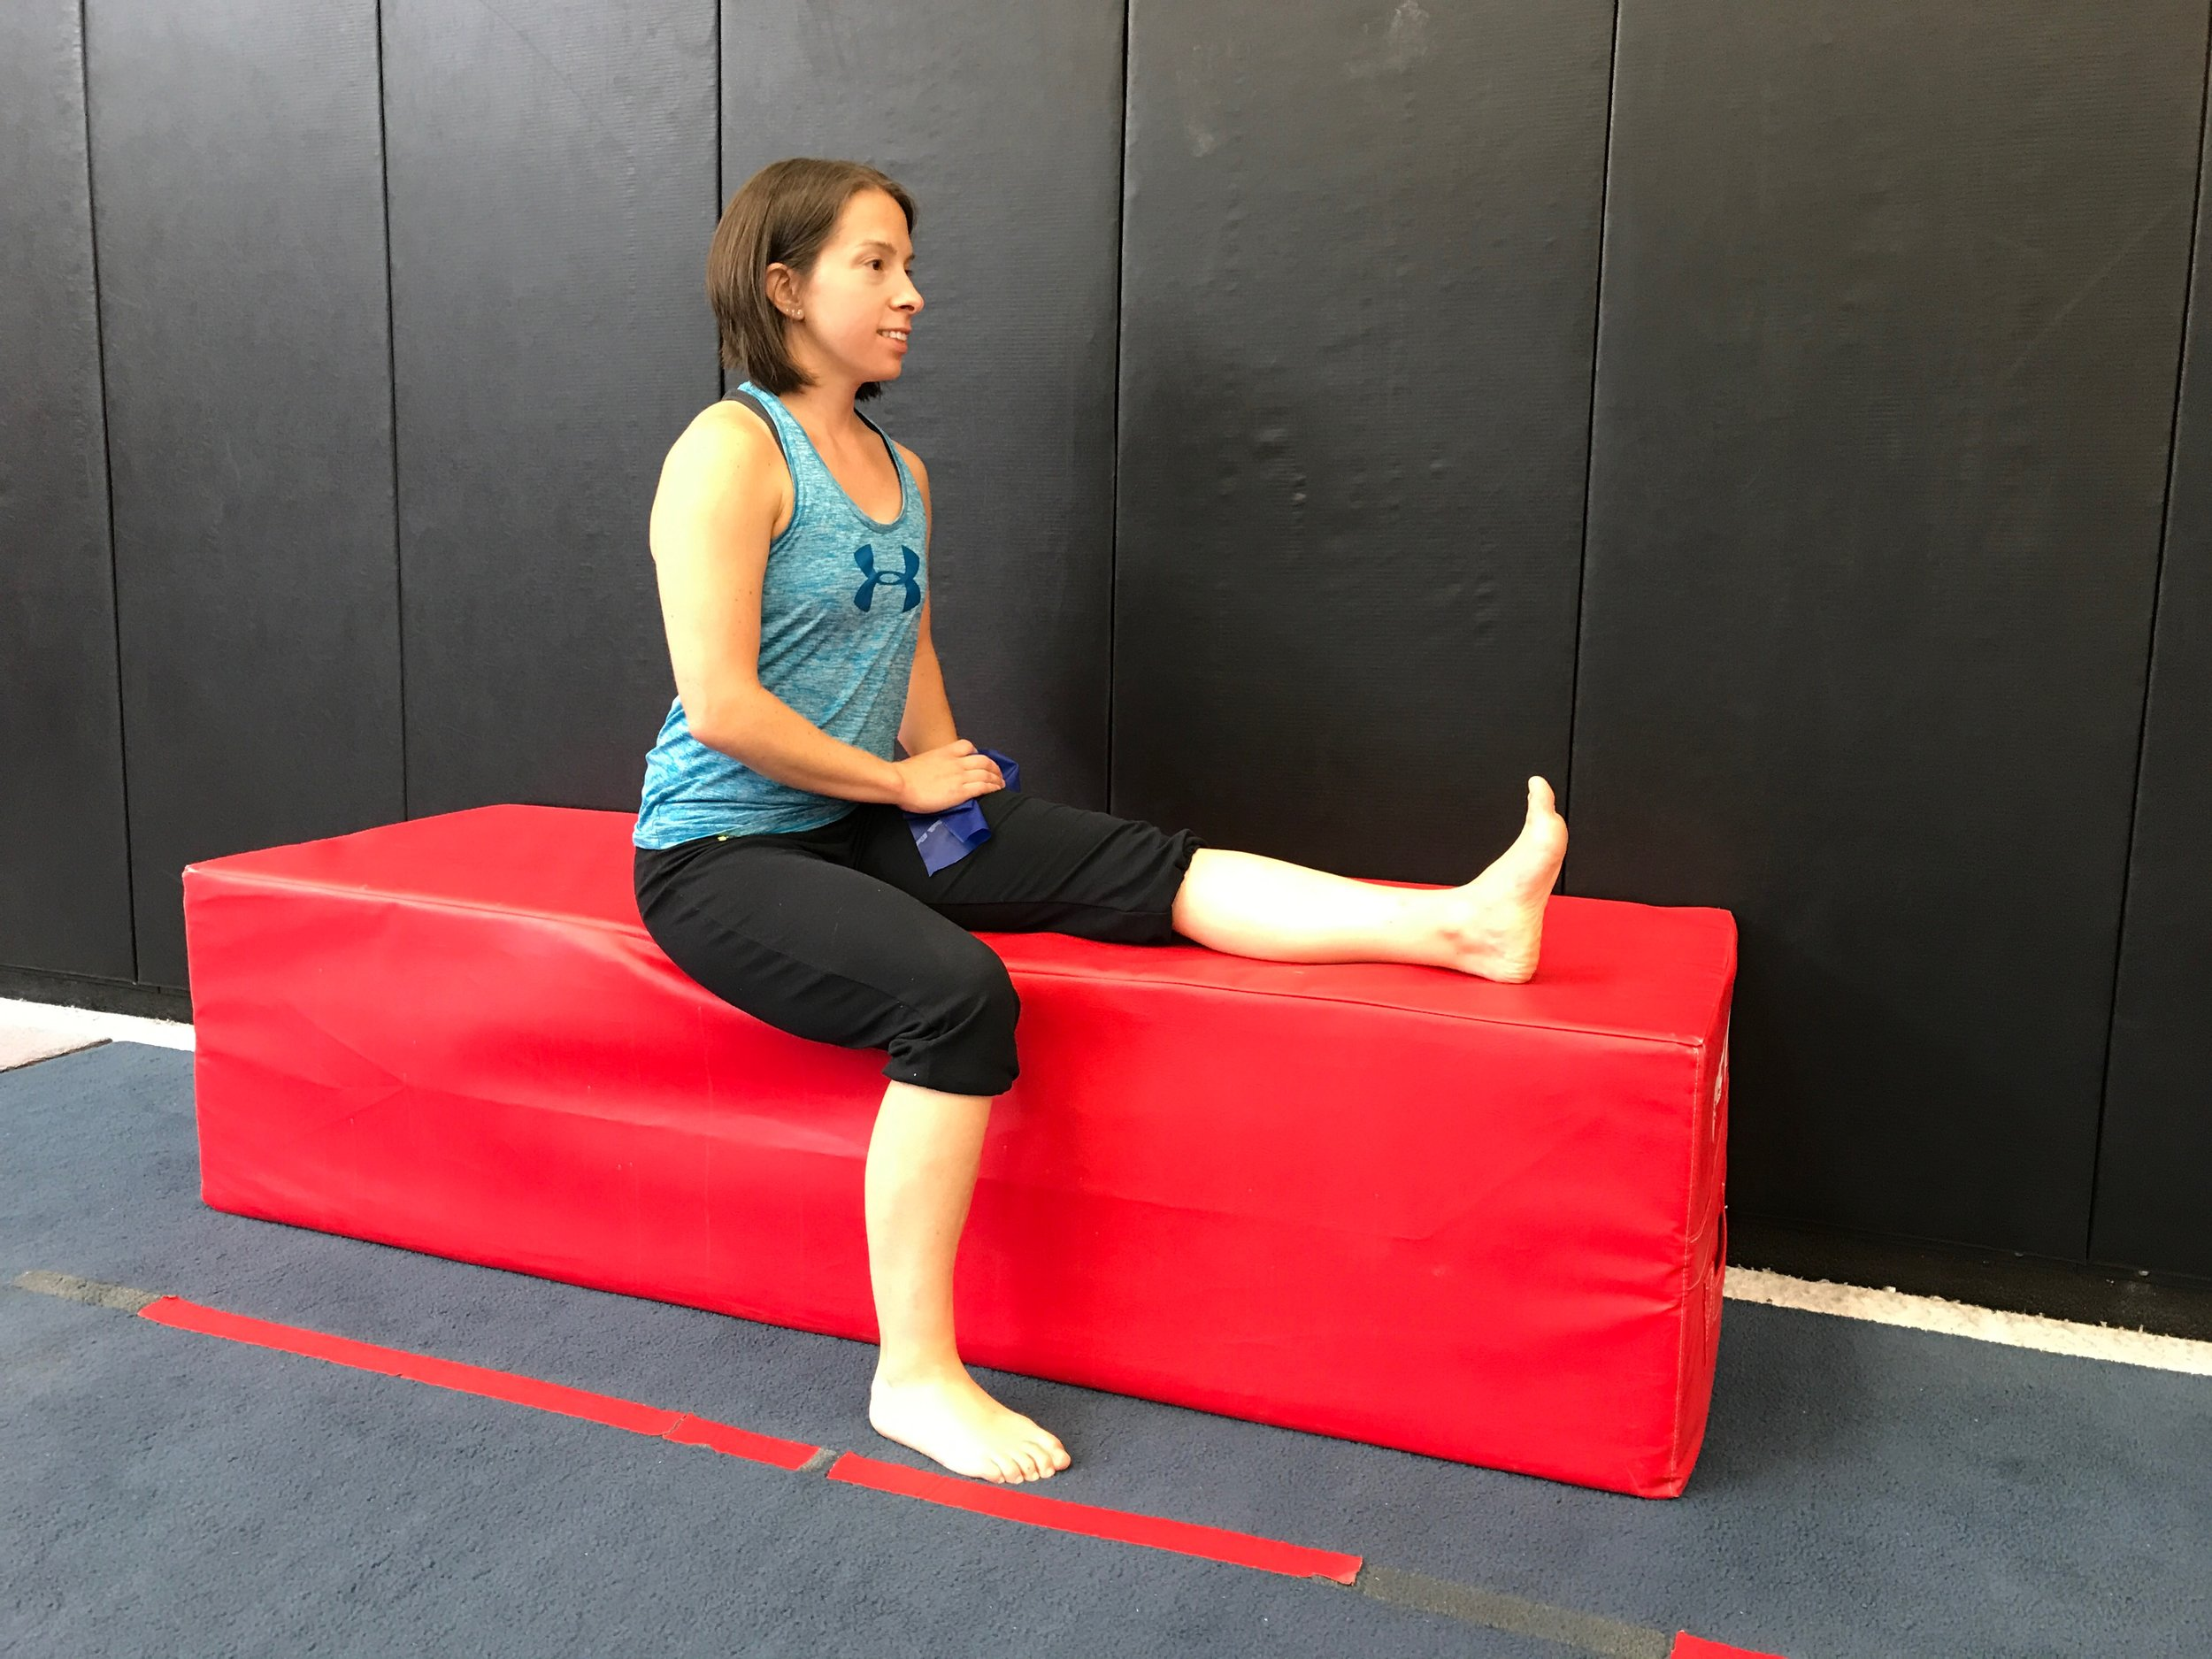 Starting position: On the edge of a table/bed with the targeted leg straight. Back straight & toe up on that side.